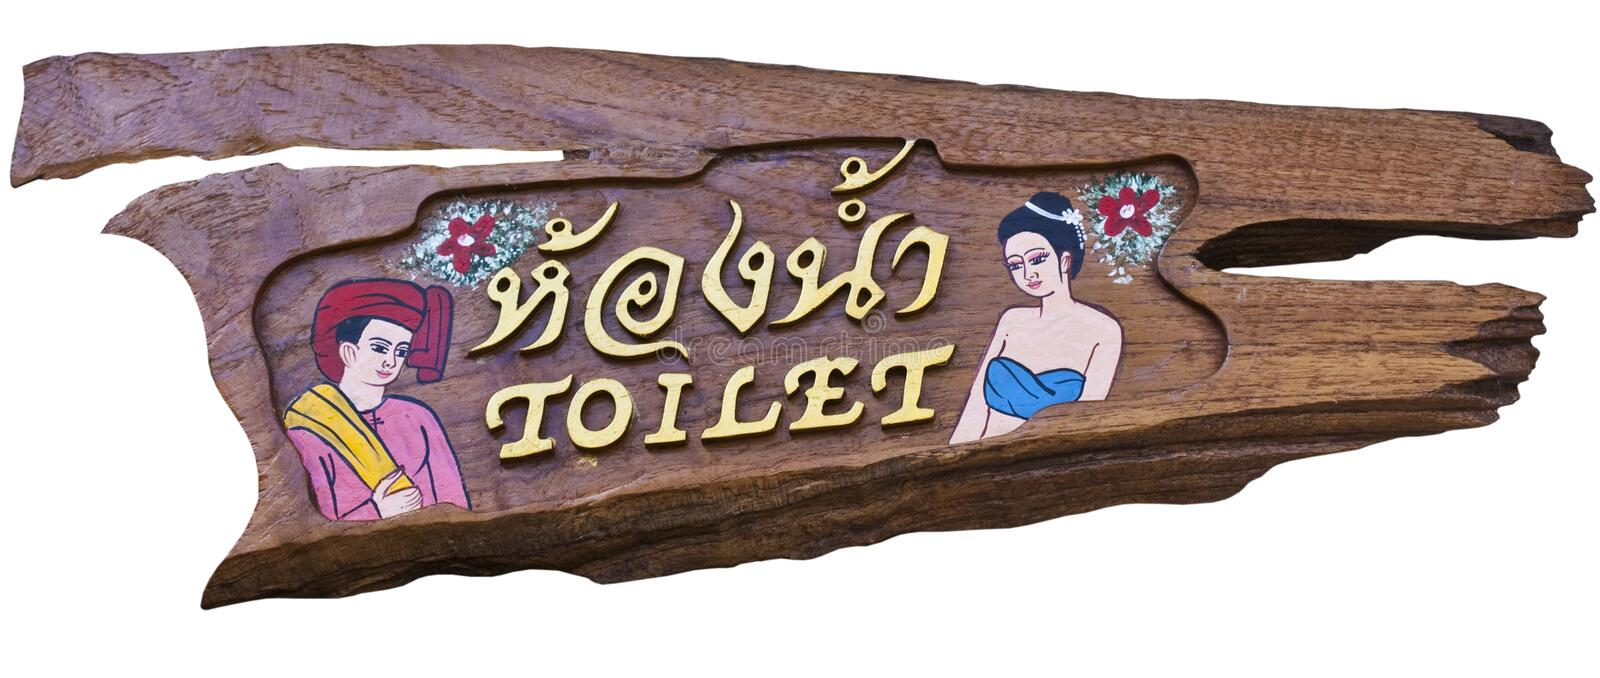 Toilet Sign On Wood Royalty Free Stock Photo